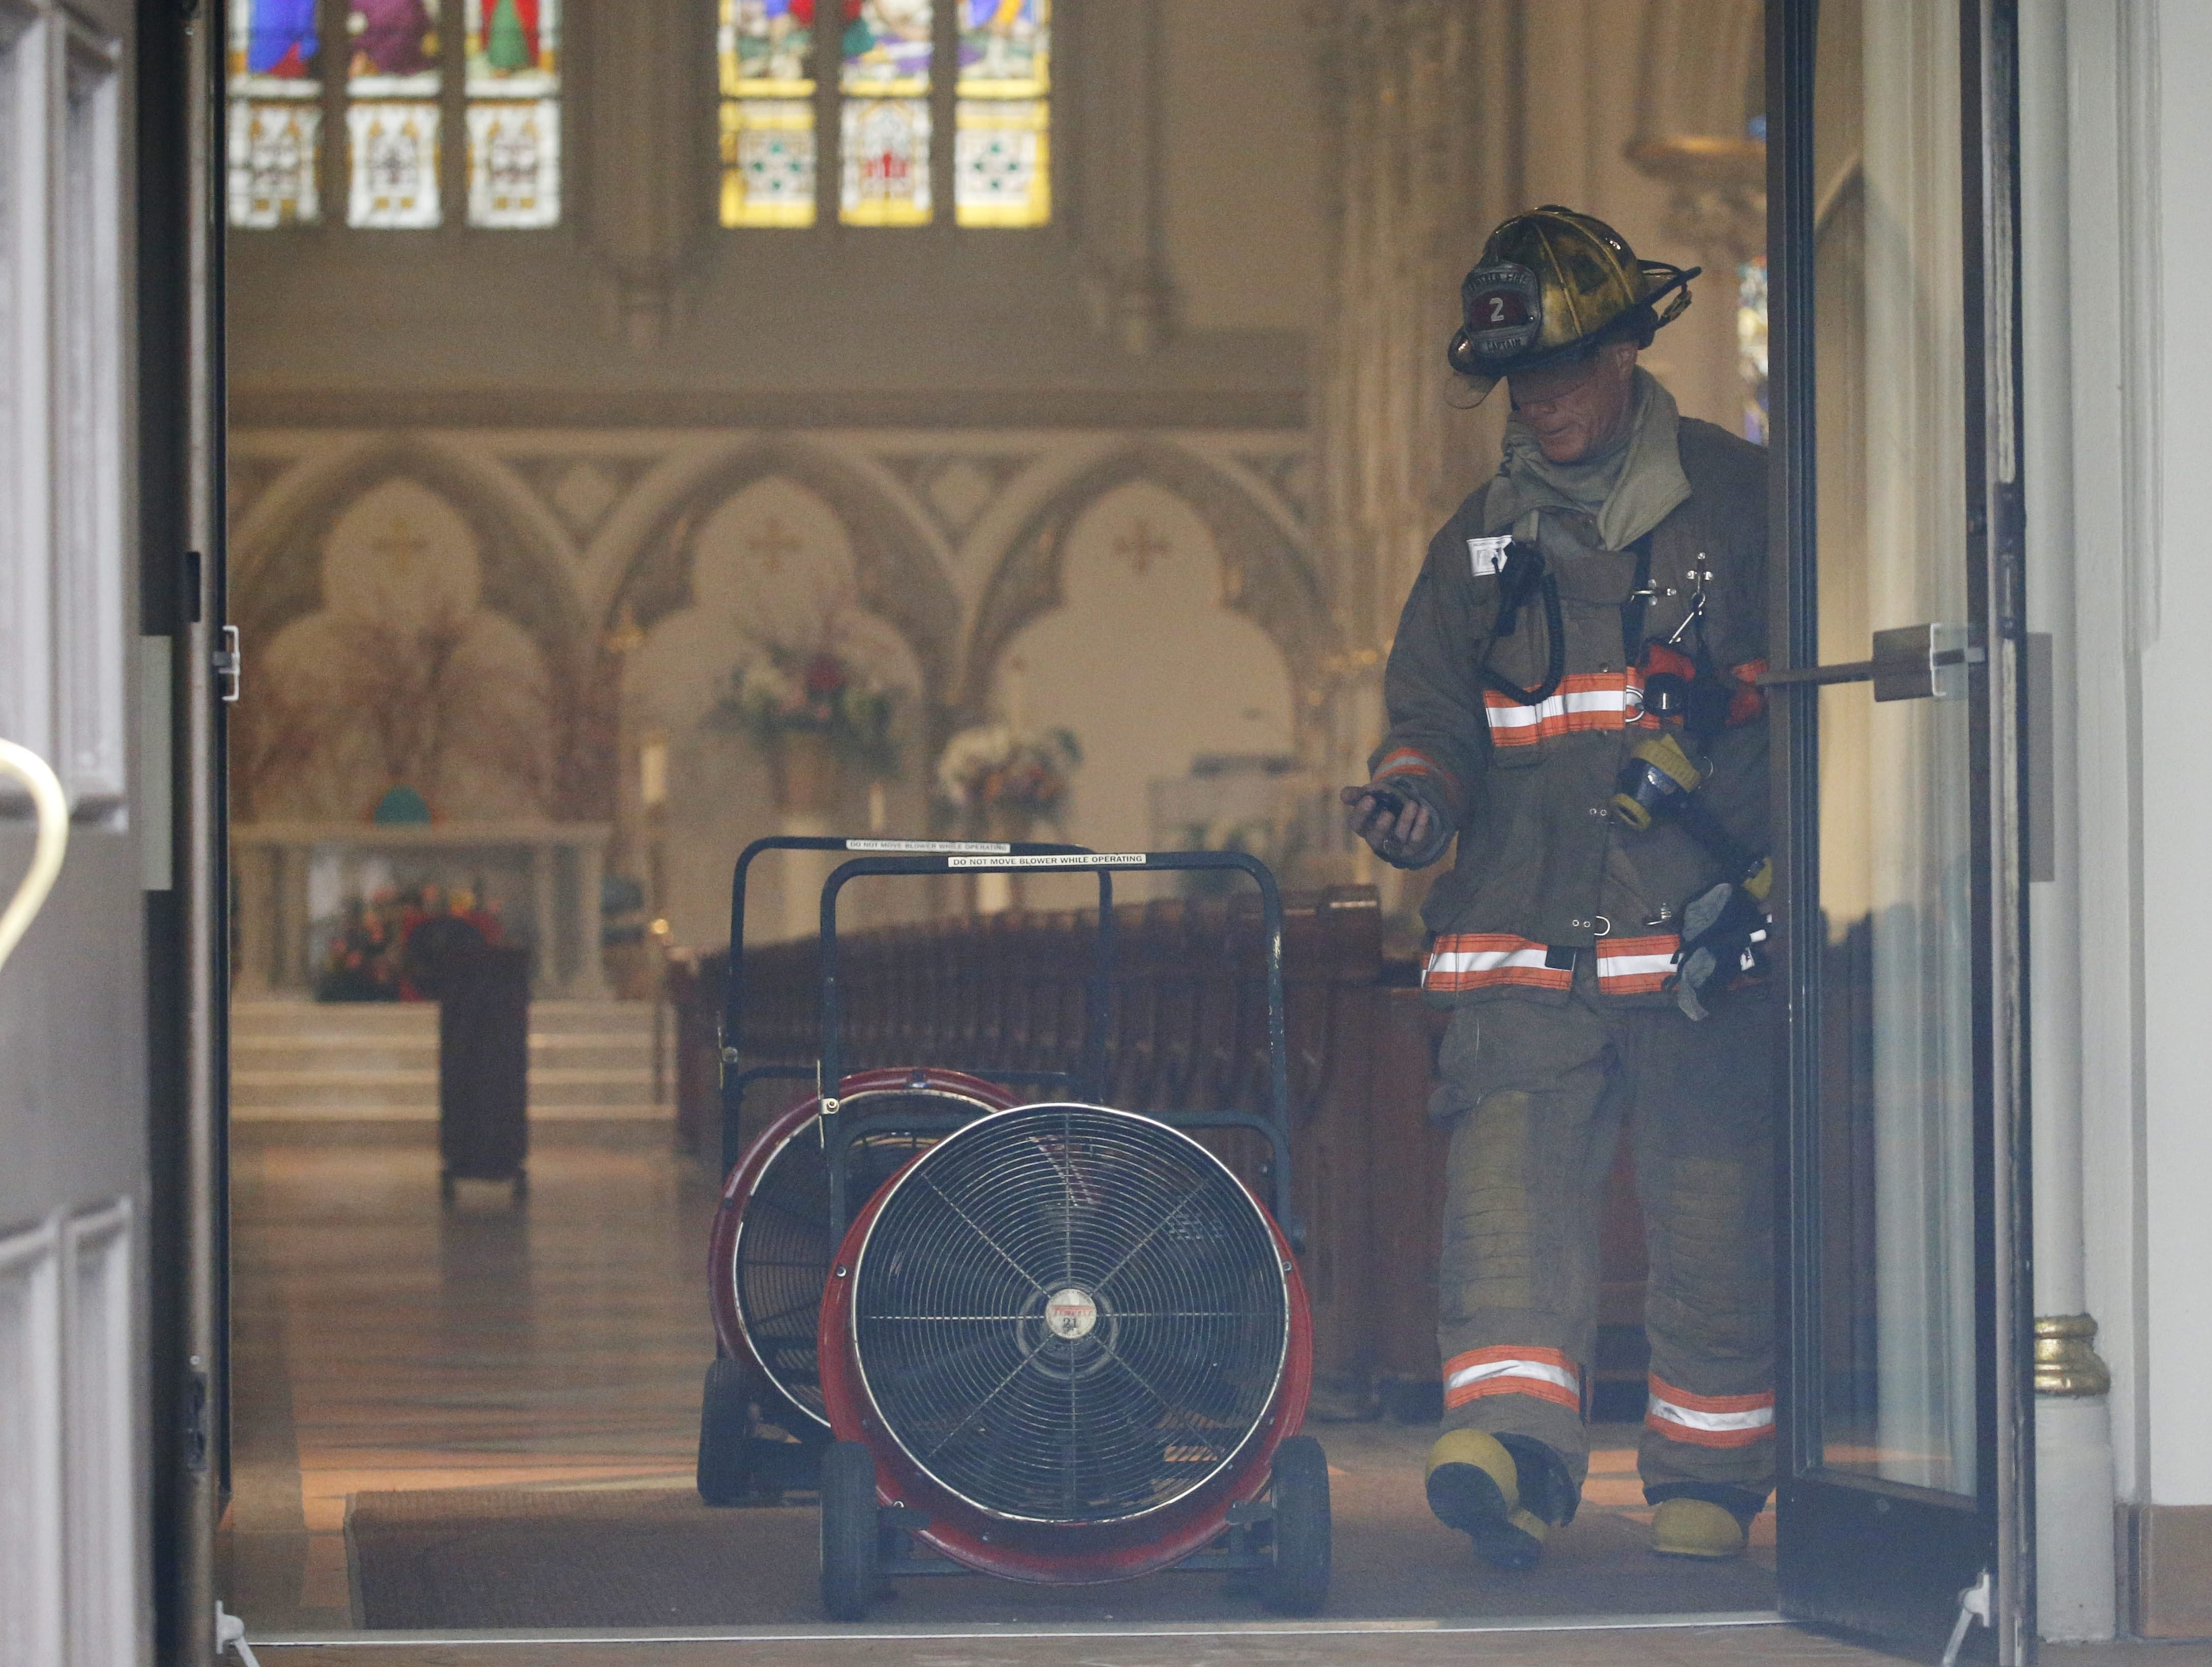 A Buffalo firefighter measures air quality as heavy duty fans clear smoke from St. Joseph Cathedral after an early morning fire, Friday, April 1, 2016.  (Derek Gee/Buffalo News)